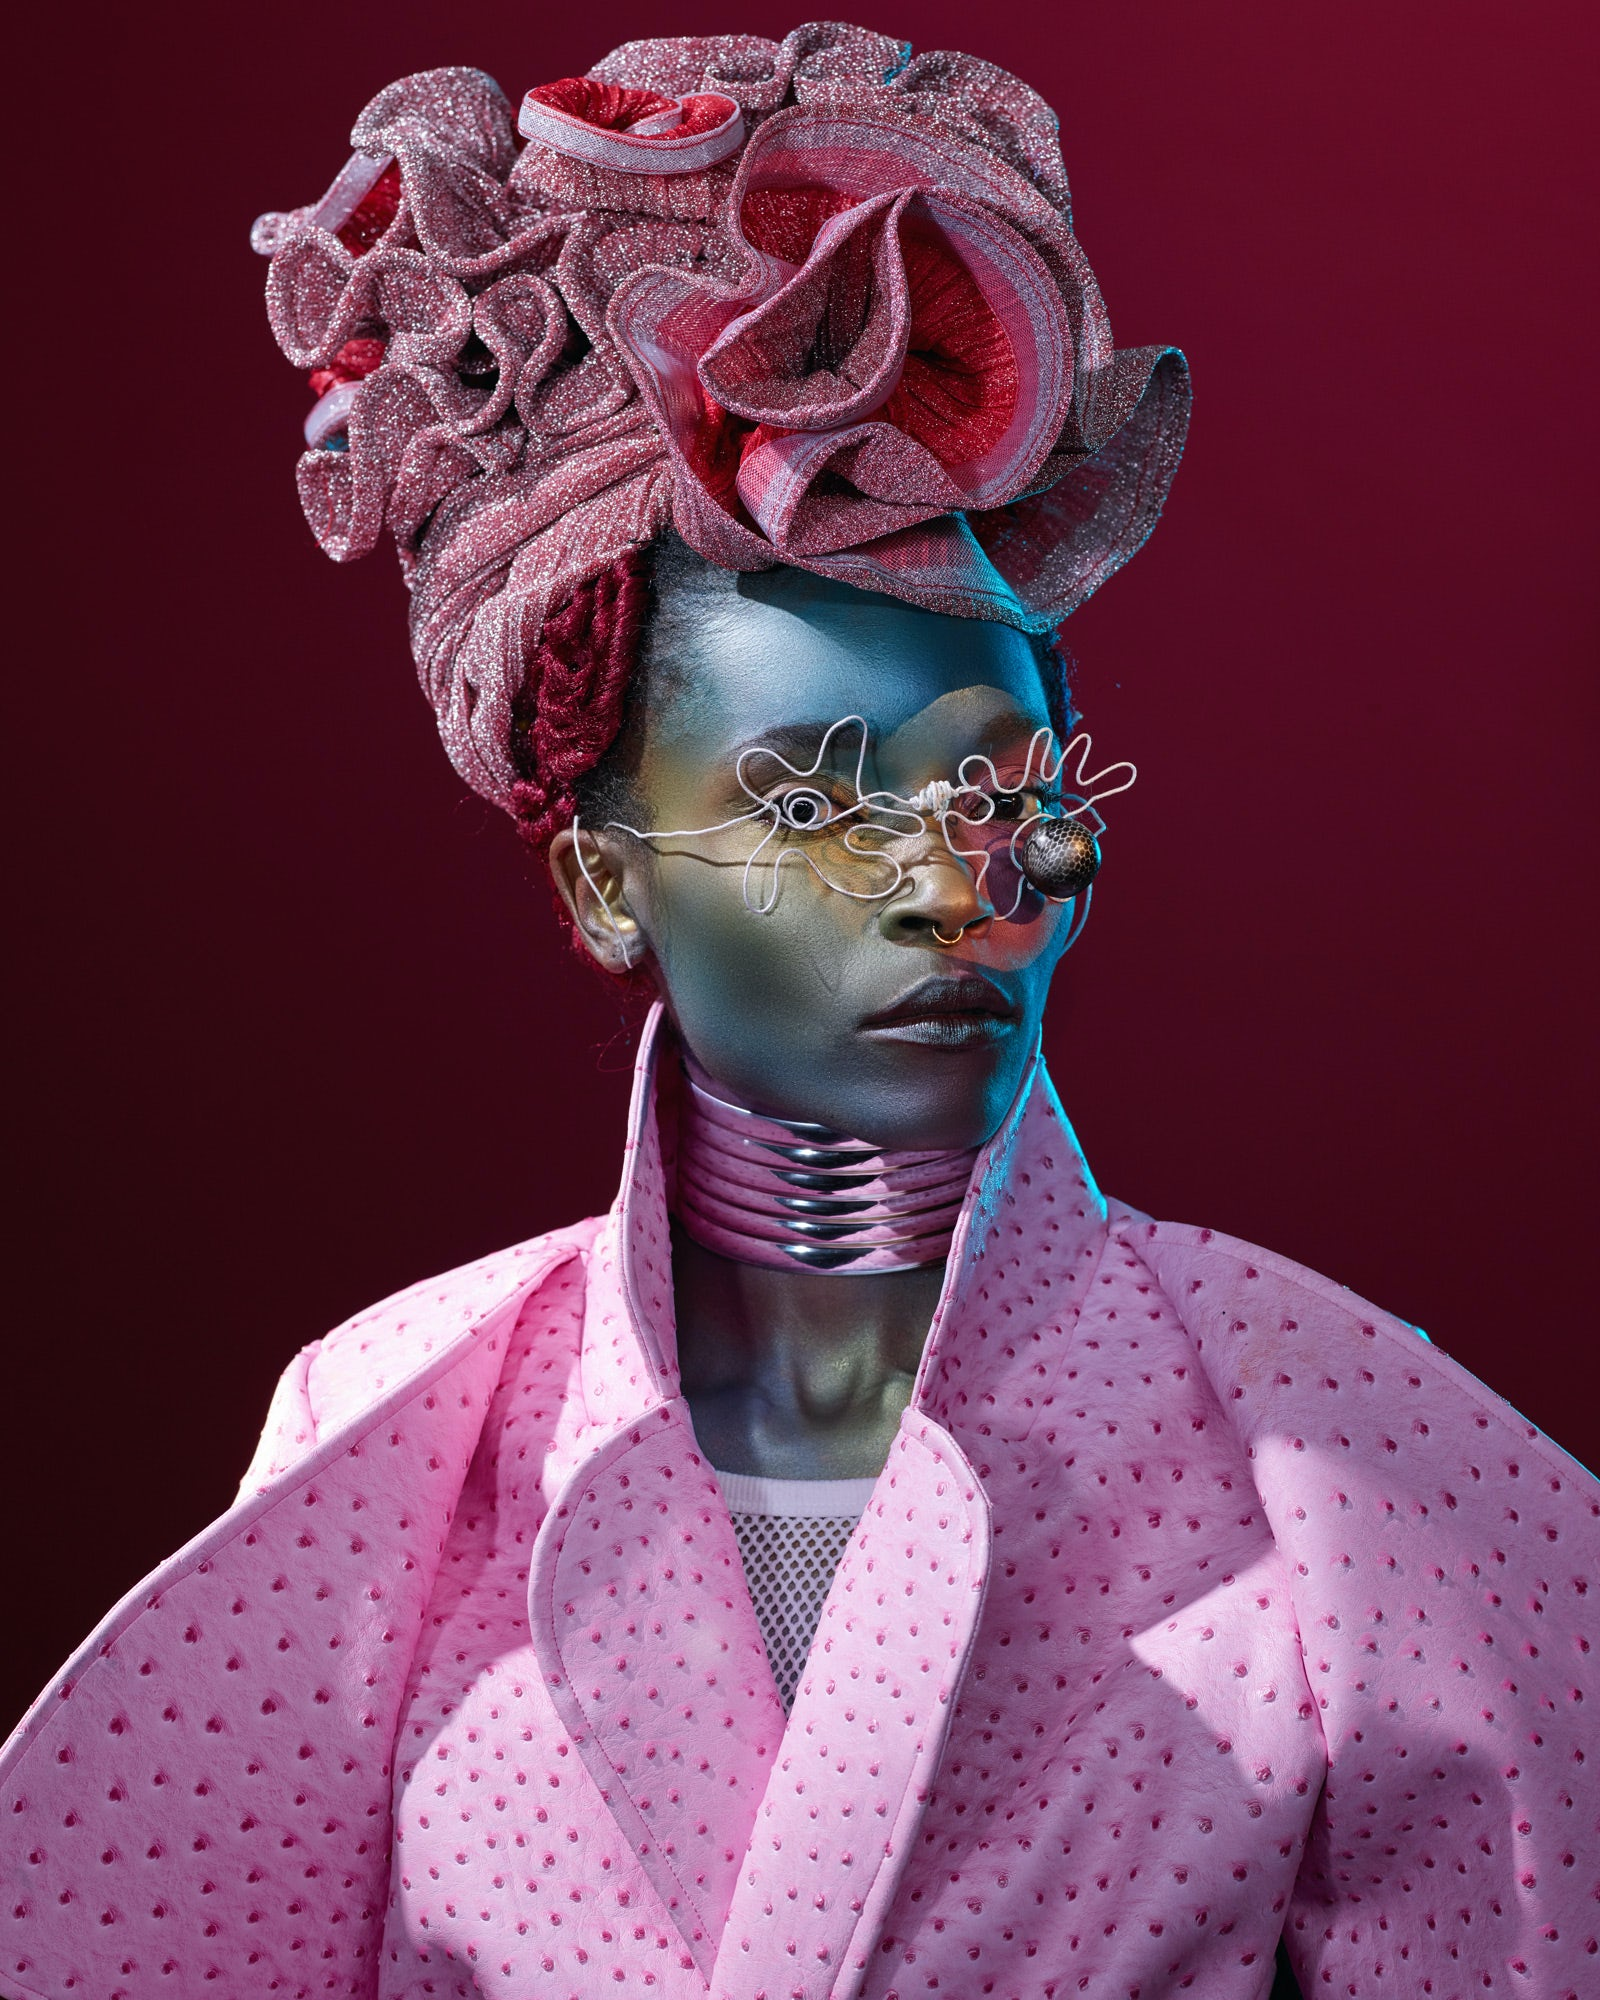 South African Photographer, Paul Samuels. Lampost Creative Agency.